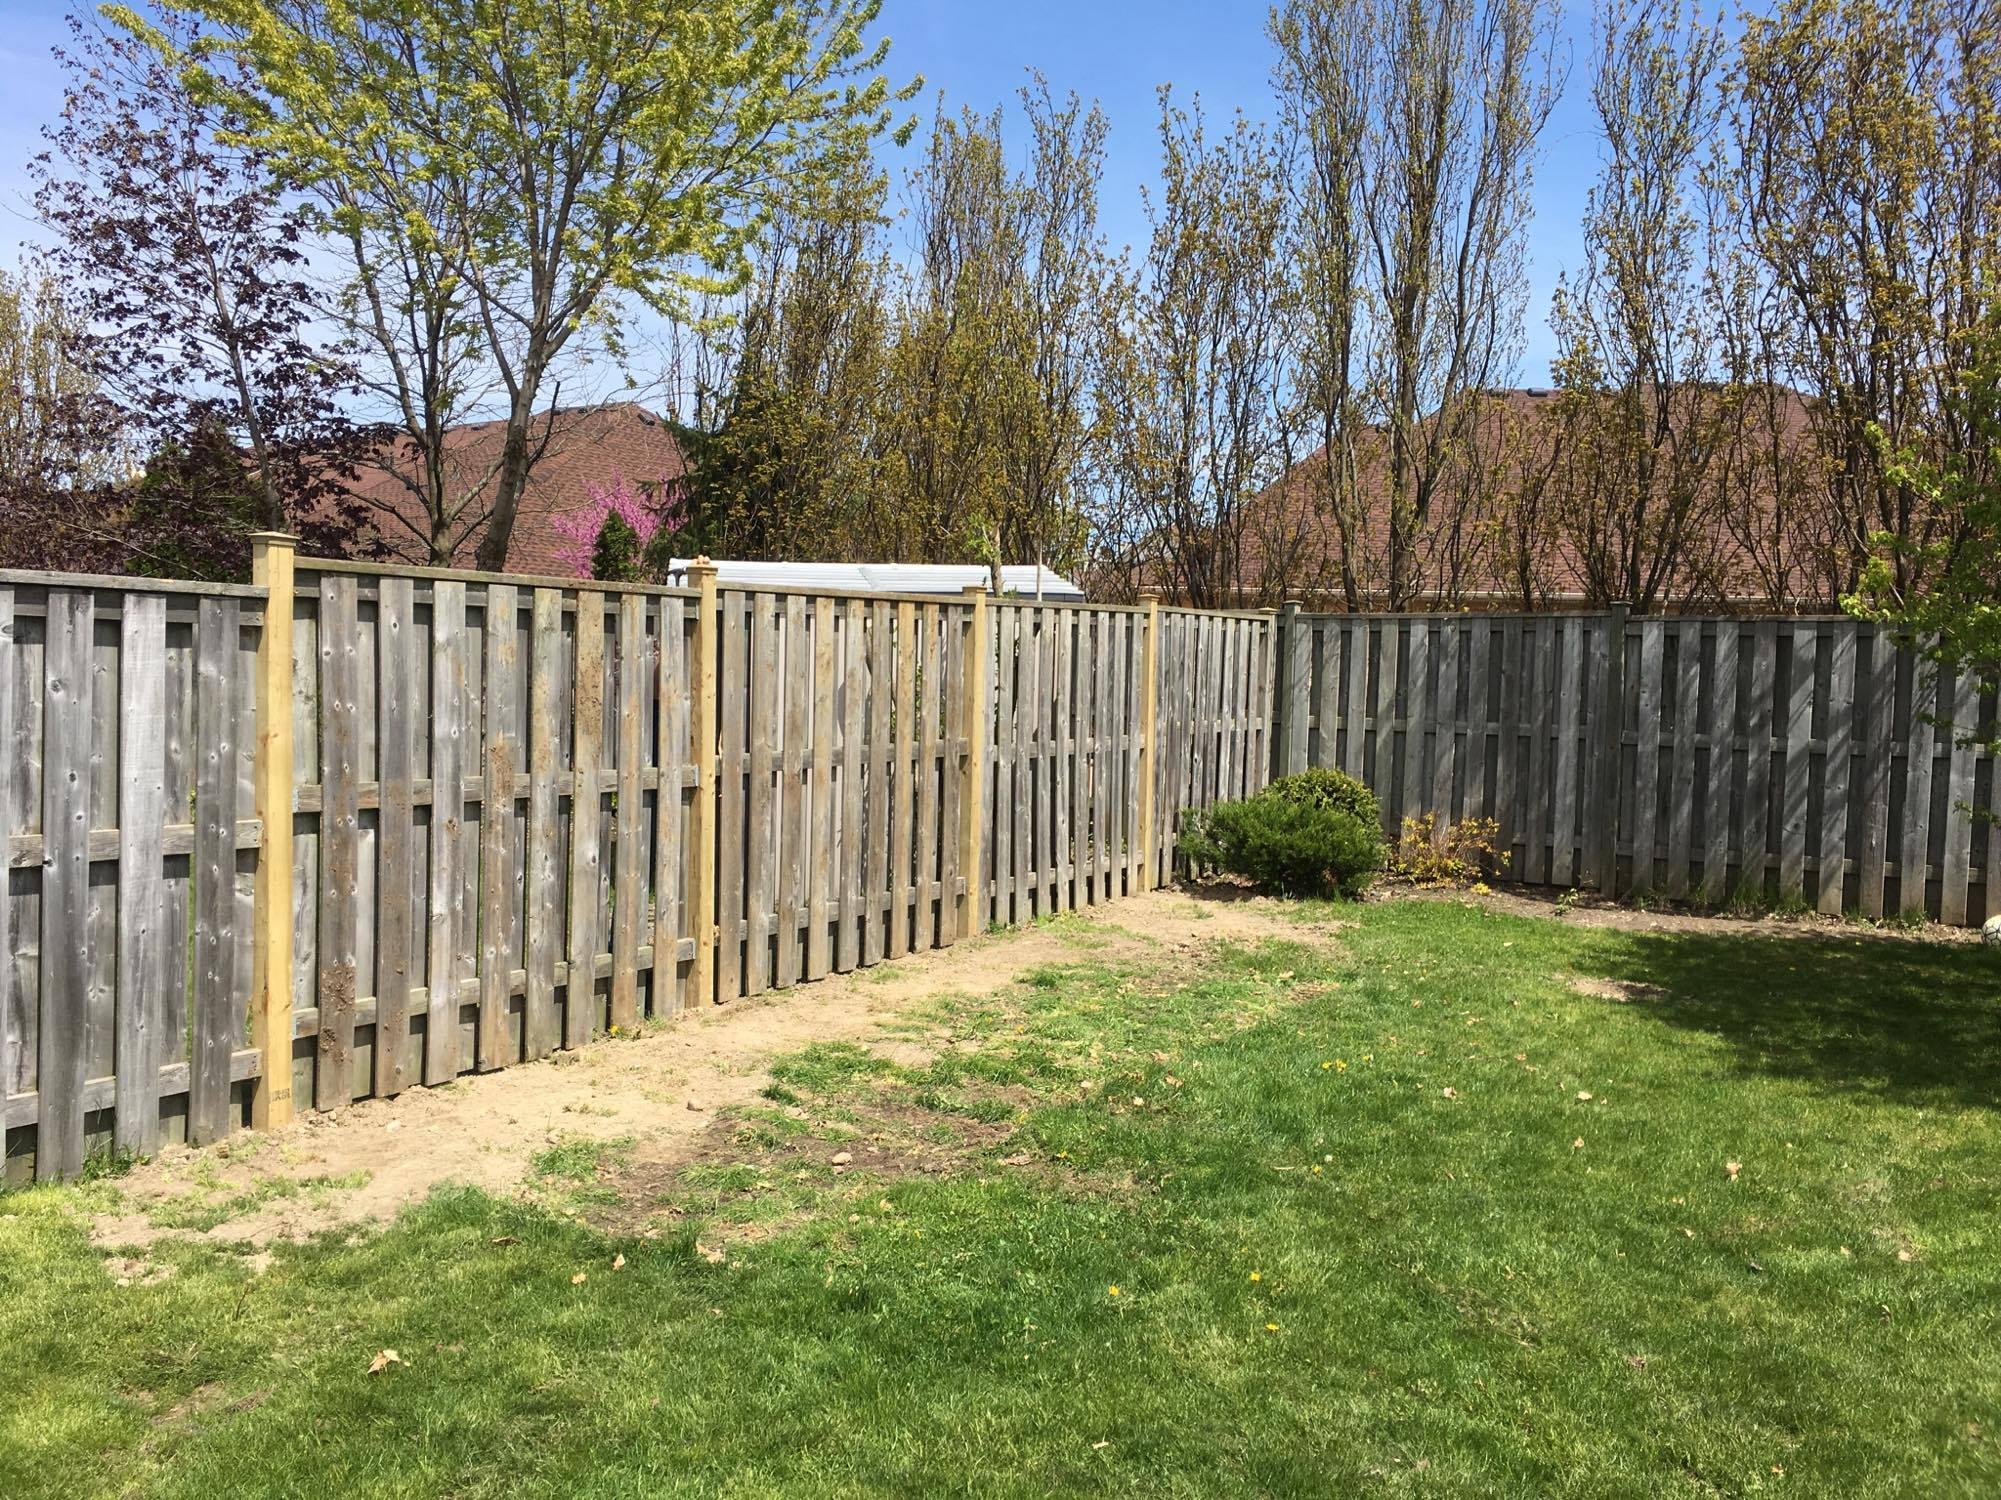 Replacement fence posts